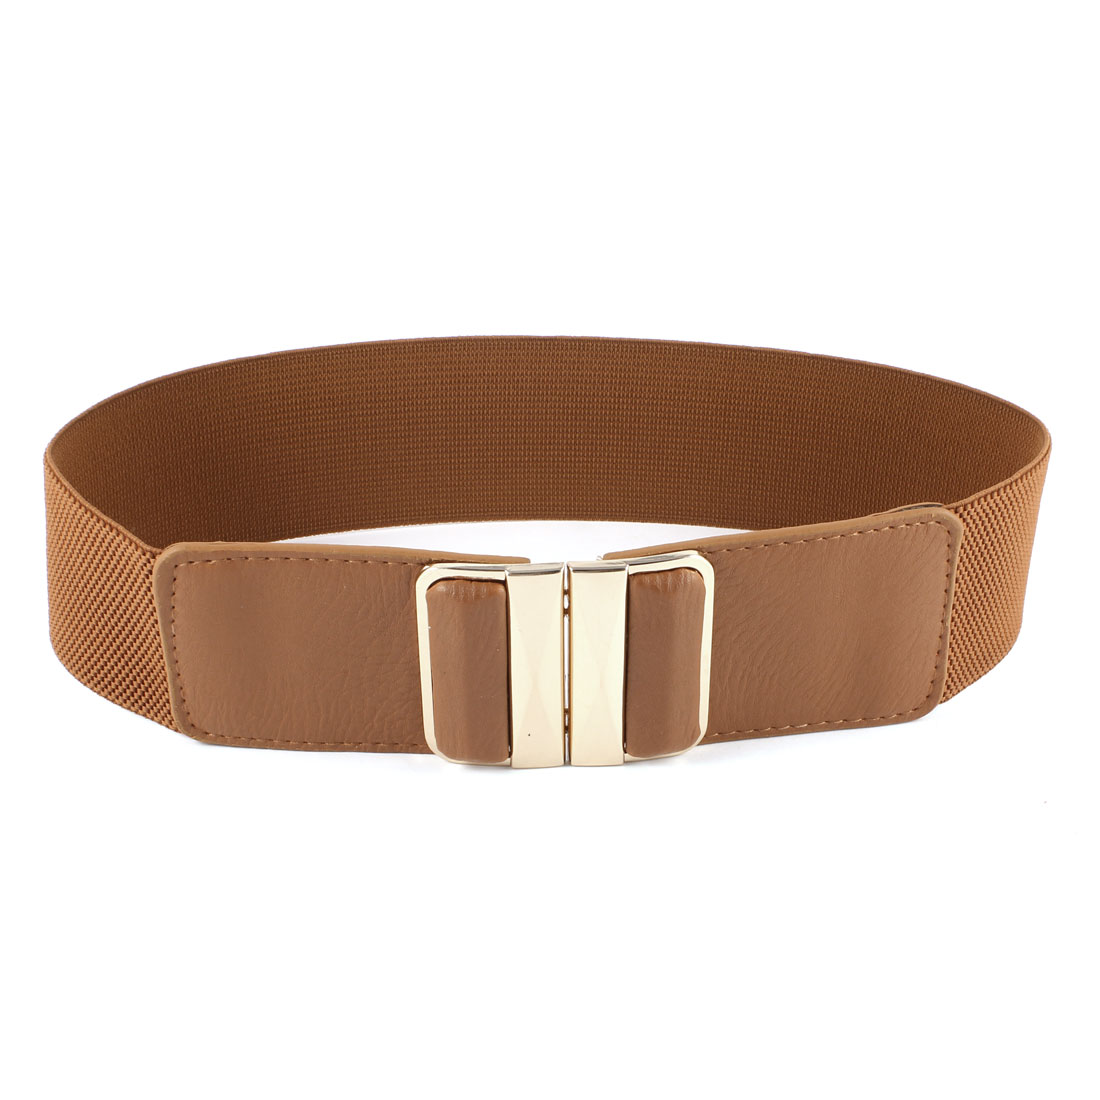 Ladies Faceted Rectangle Metal Interlocking Closure Waistband Cinch Belt Brown